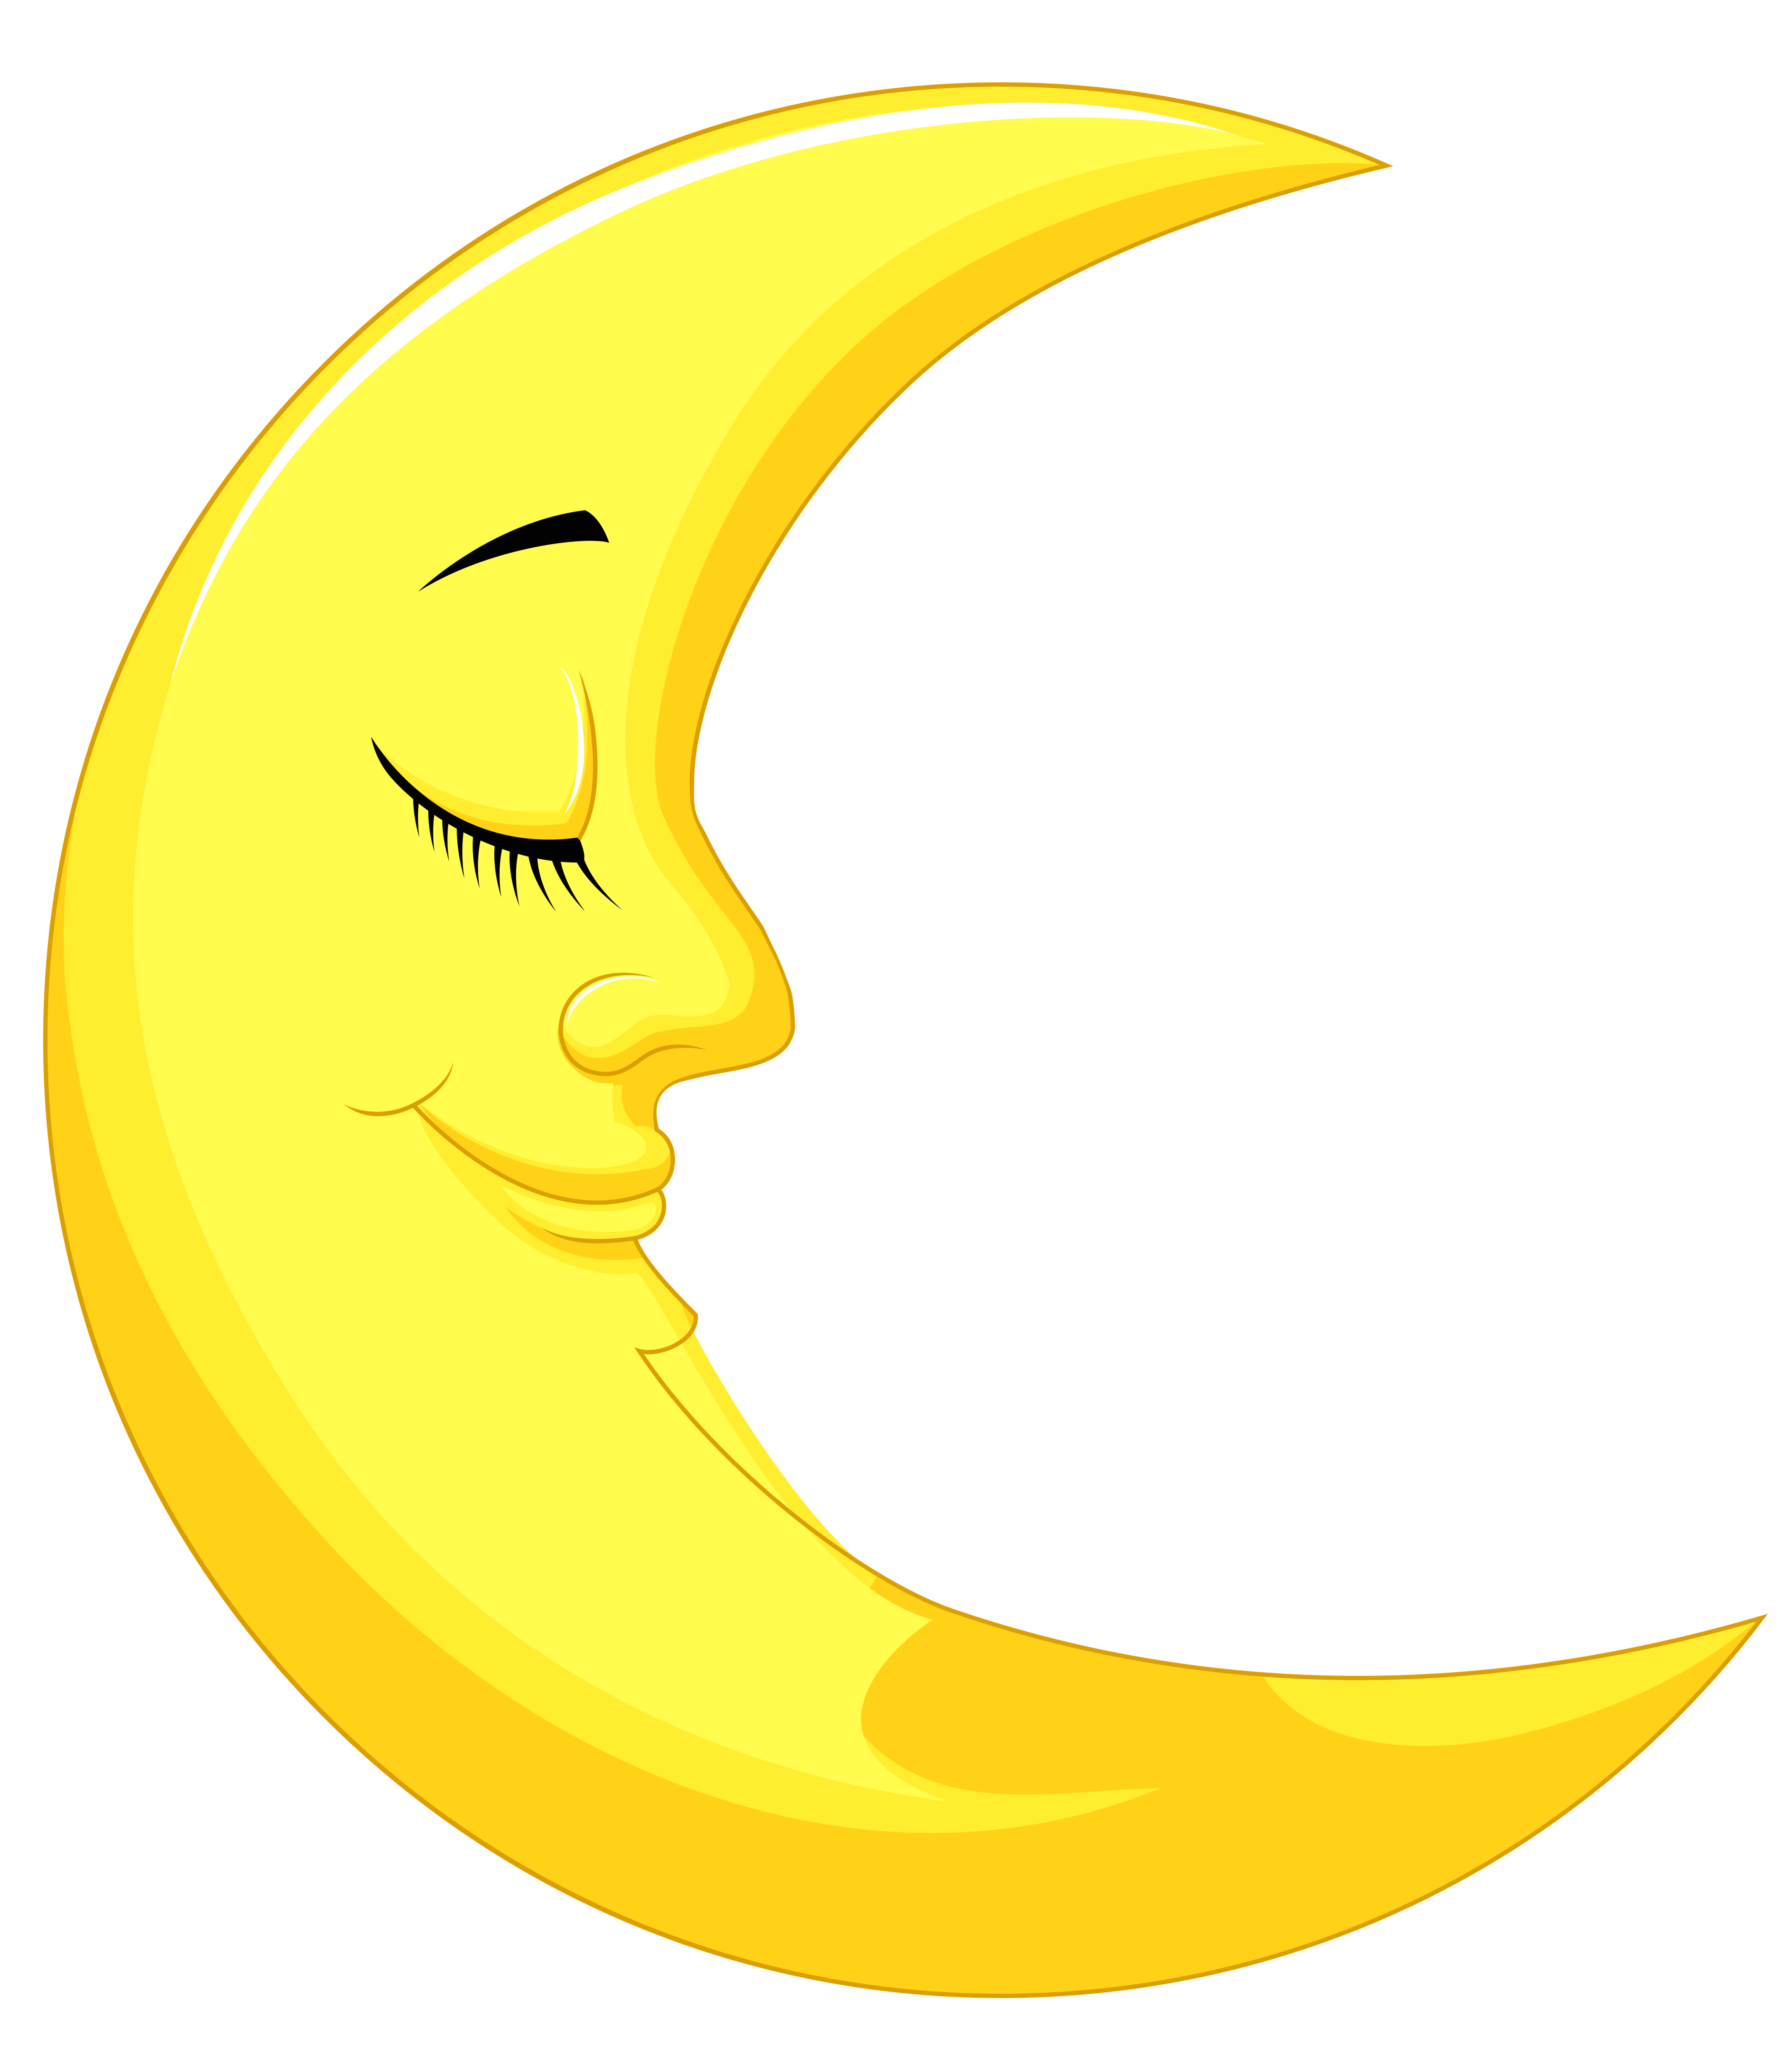 picture freeuse 5 clipart yellow. Cute moon png picture